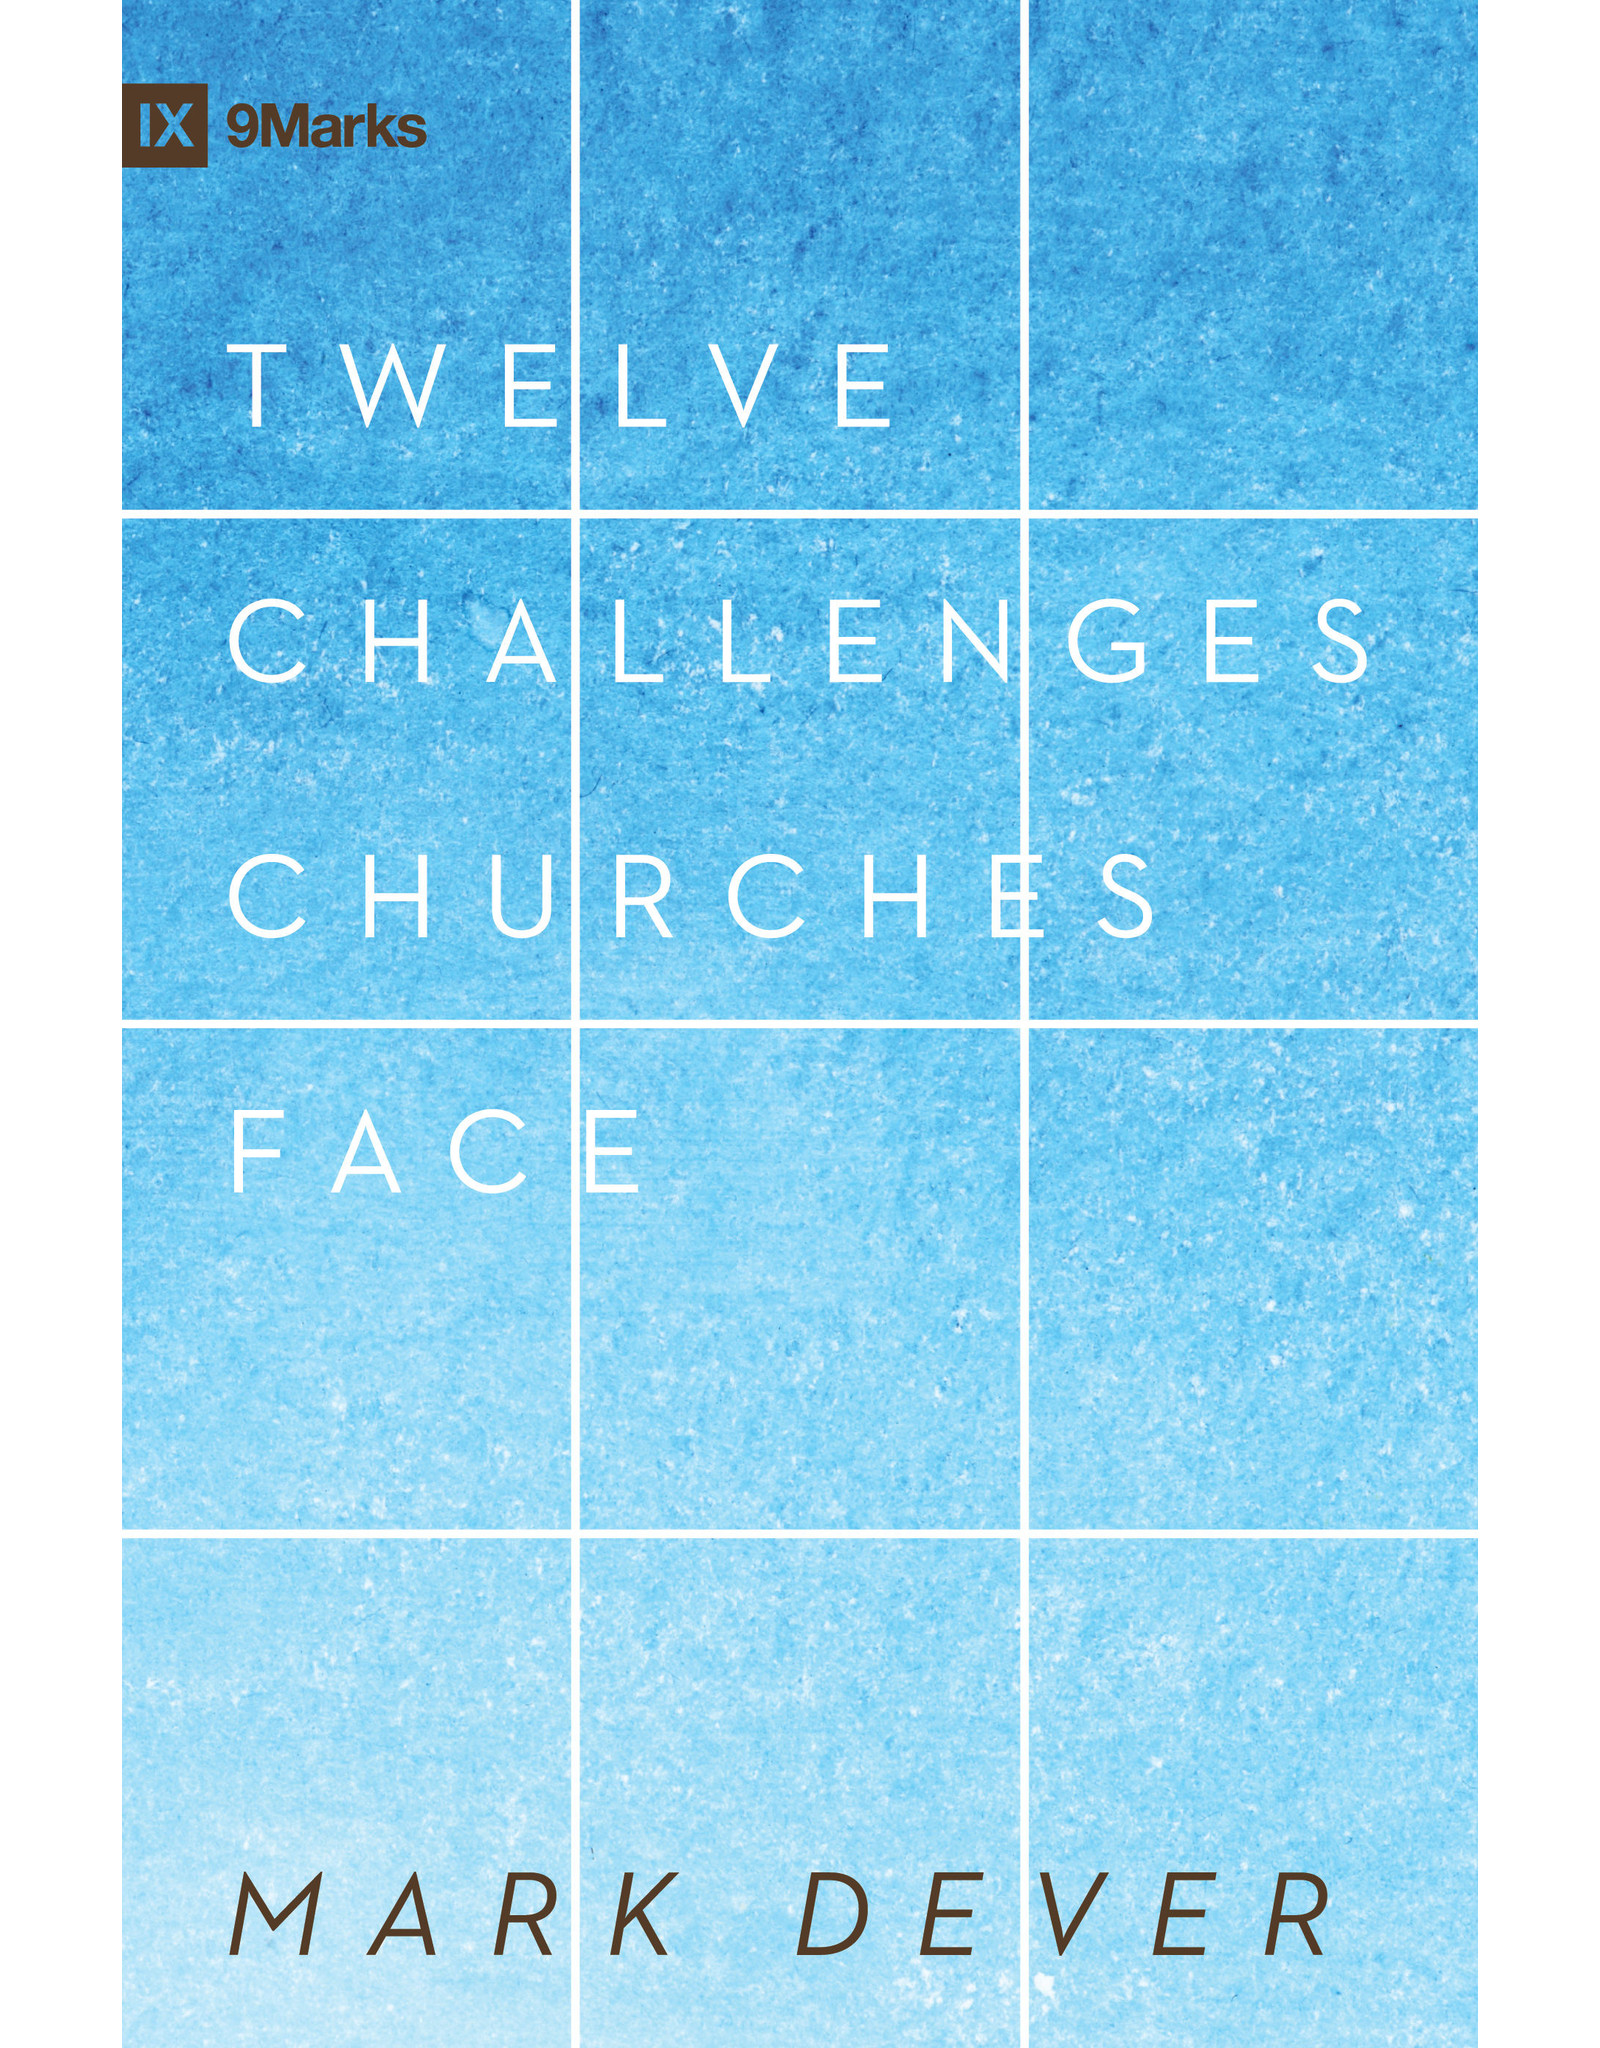 Crossway / Good News Twelve Challenges Churches Face (9Marks)